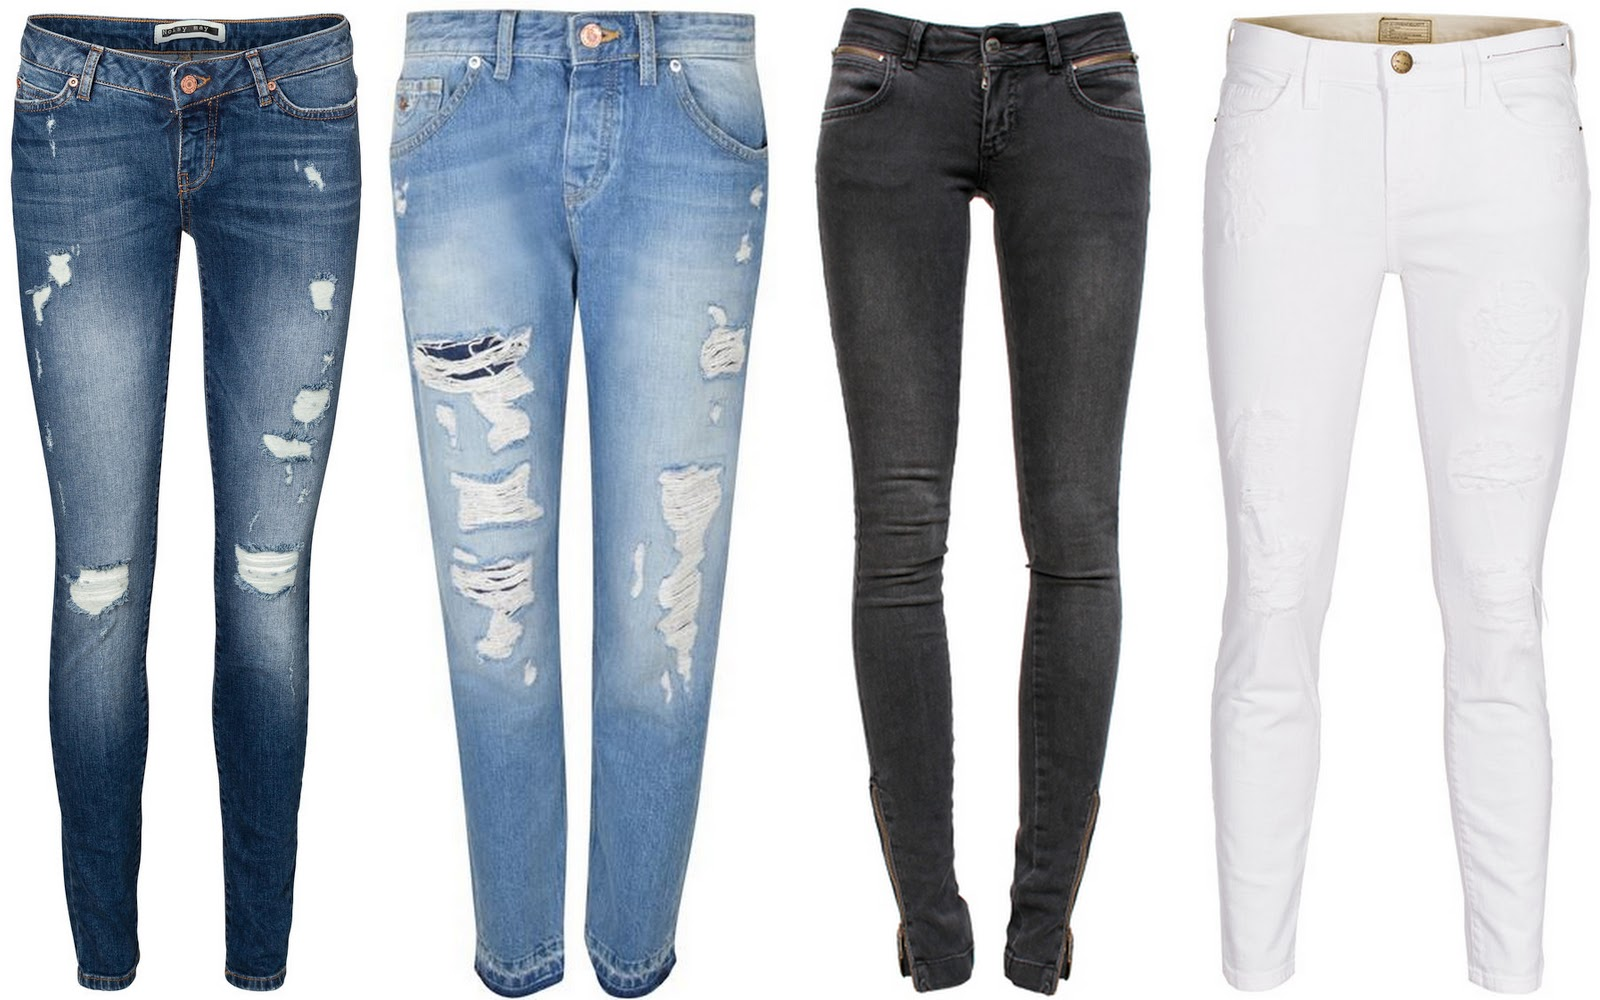 vero moda, maison scotch, anine bing, currten/elliott, jeans, perfect